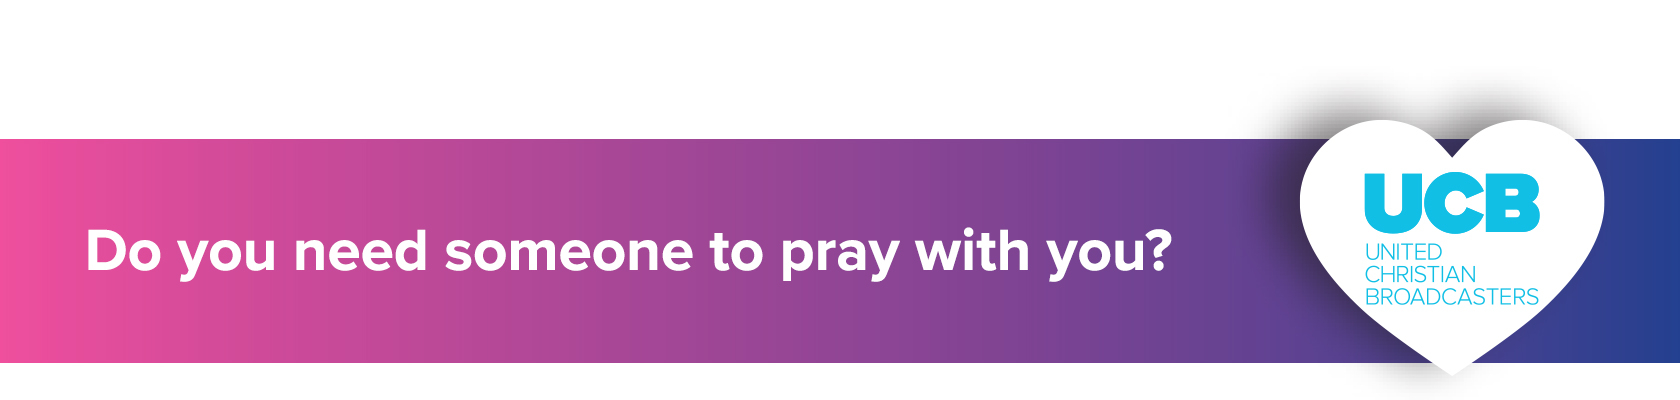 Do you need someone to pray with you?